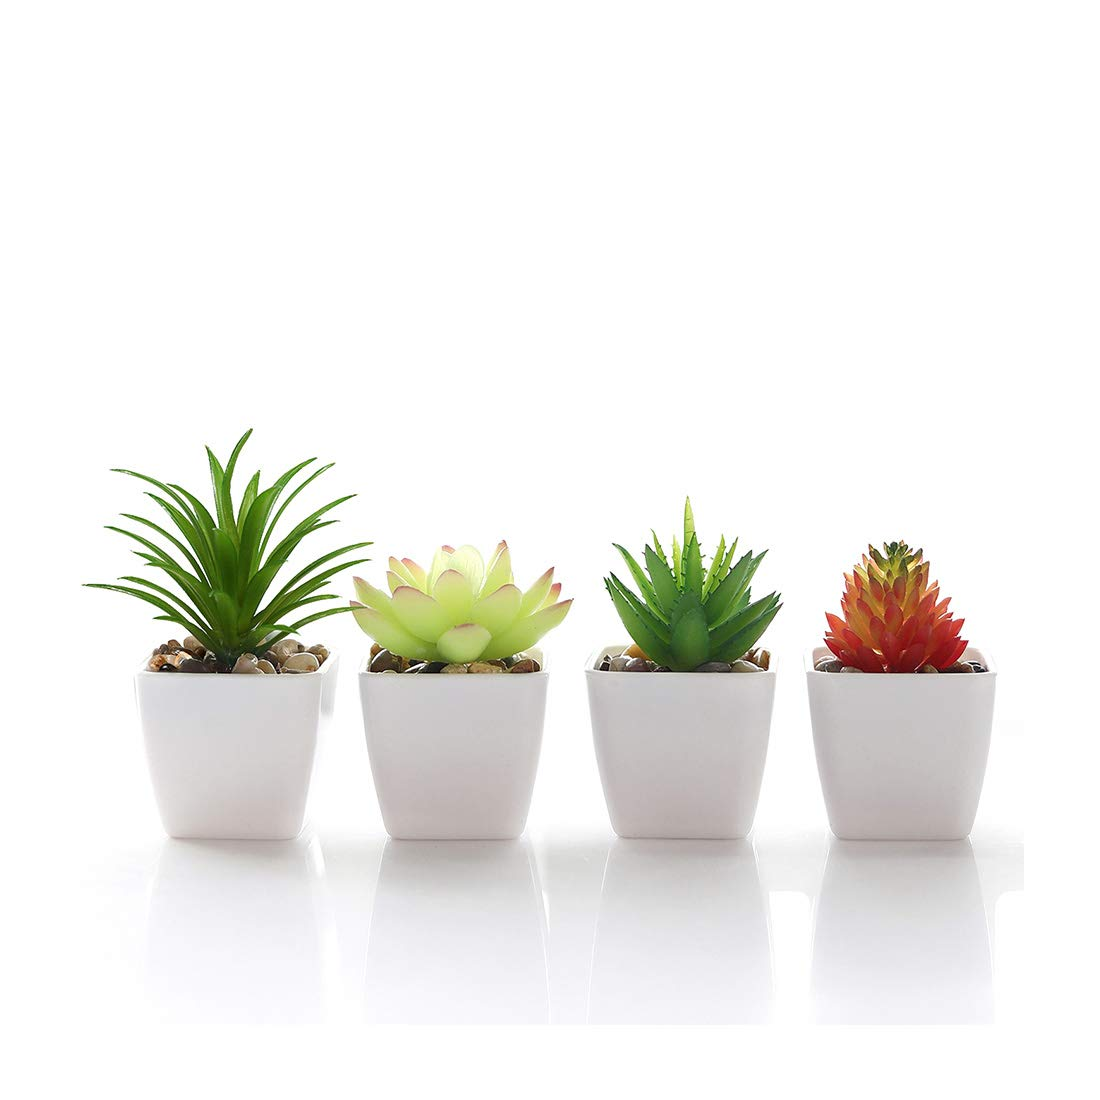 Ceramic Basin-4PCS, S-4PCS Veryhome Fake Succulents Plants Artificial Potted in Mini Square White Pots for Home Garden Decor Green